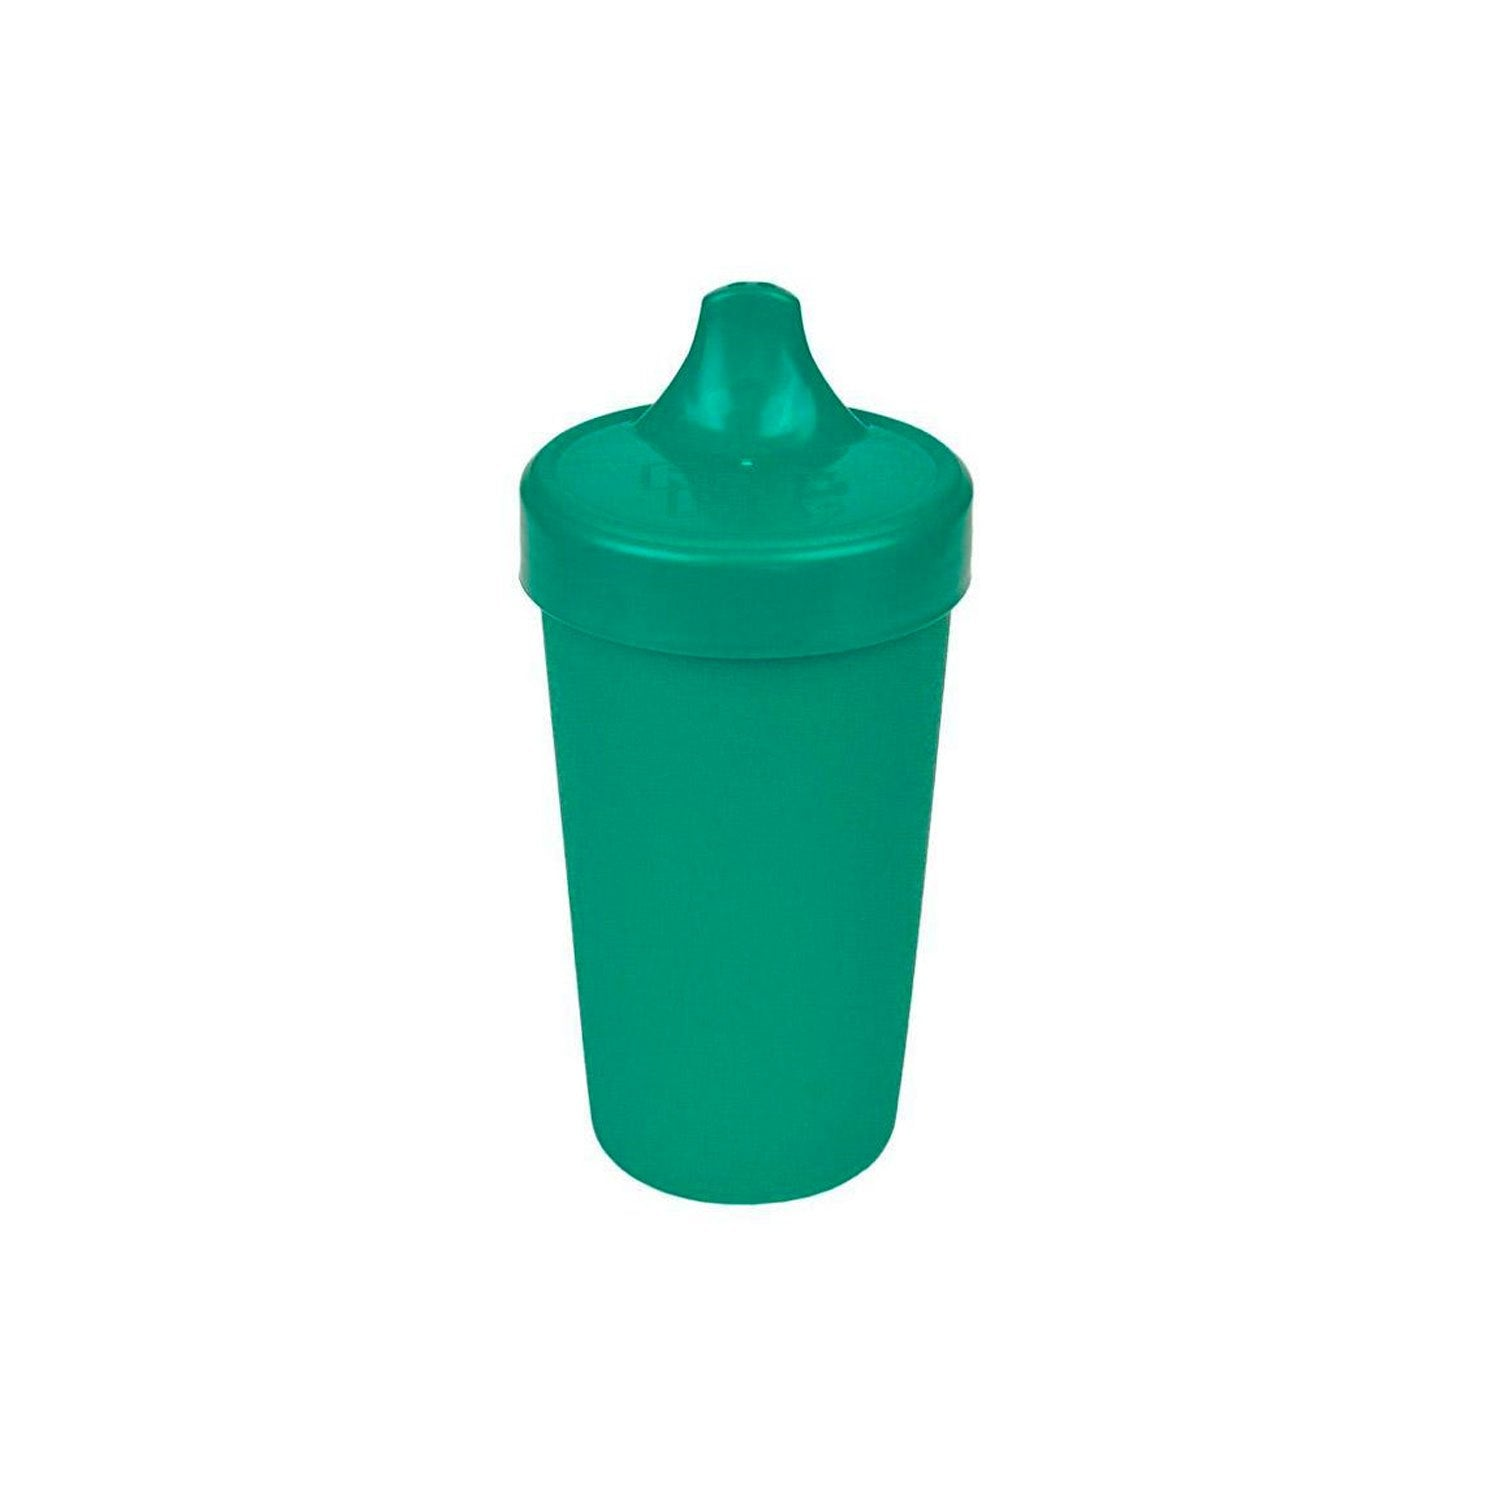 Replay Sippy Cup Replay Sippy Cups Teal at Little Earth Nest Eco Shop